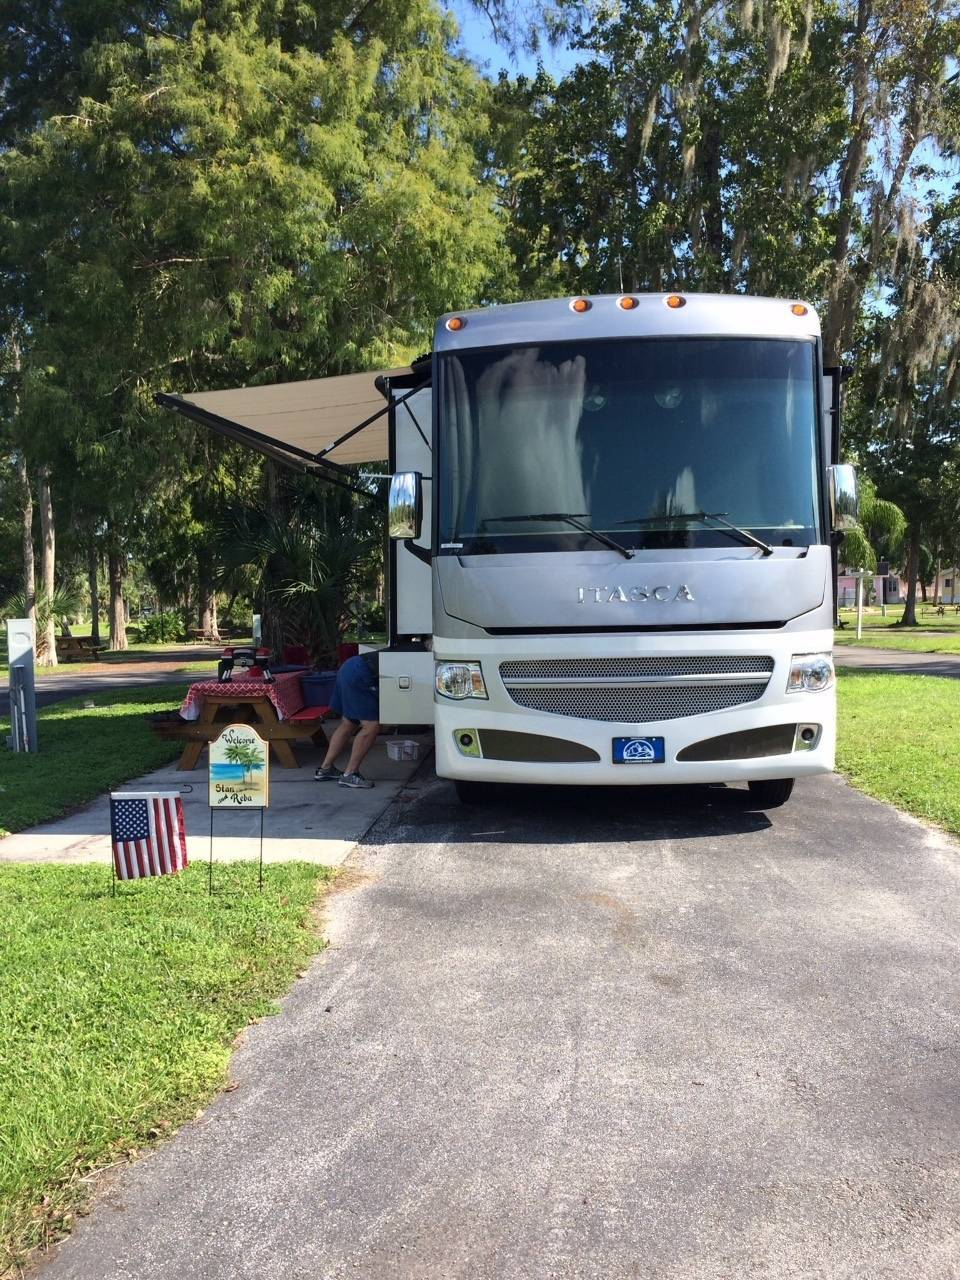 2016 Itasca SUNCRUISER 37F Used Class A For Sale In Tampa, FL 33688